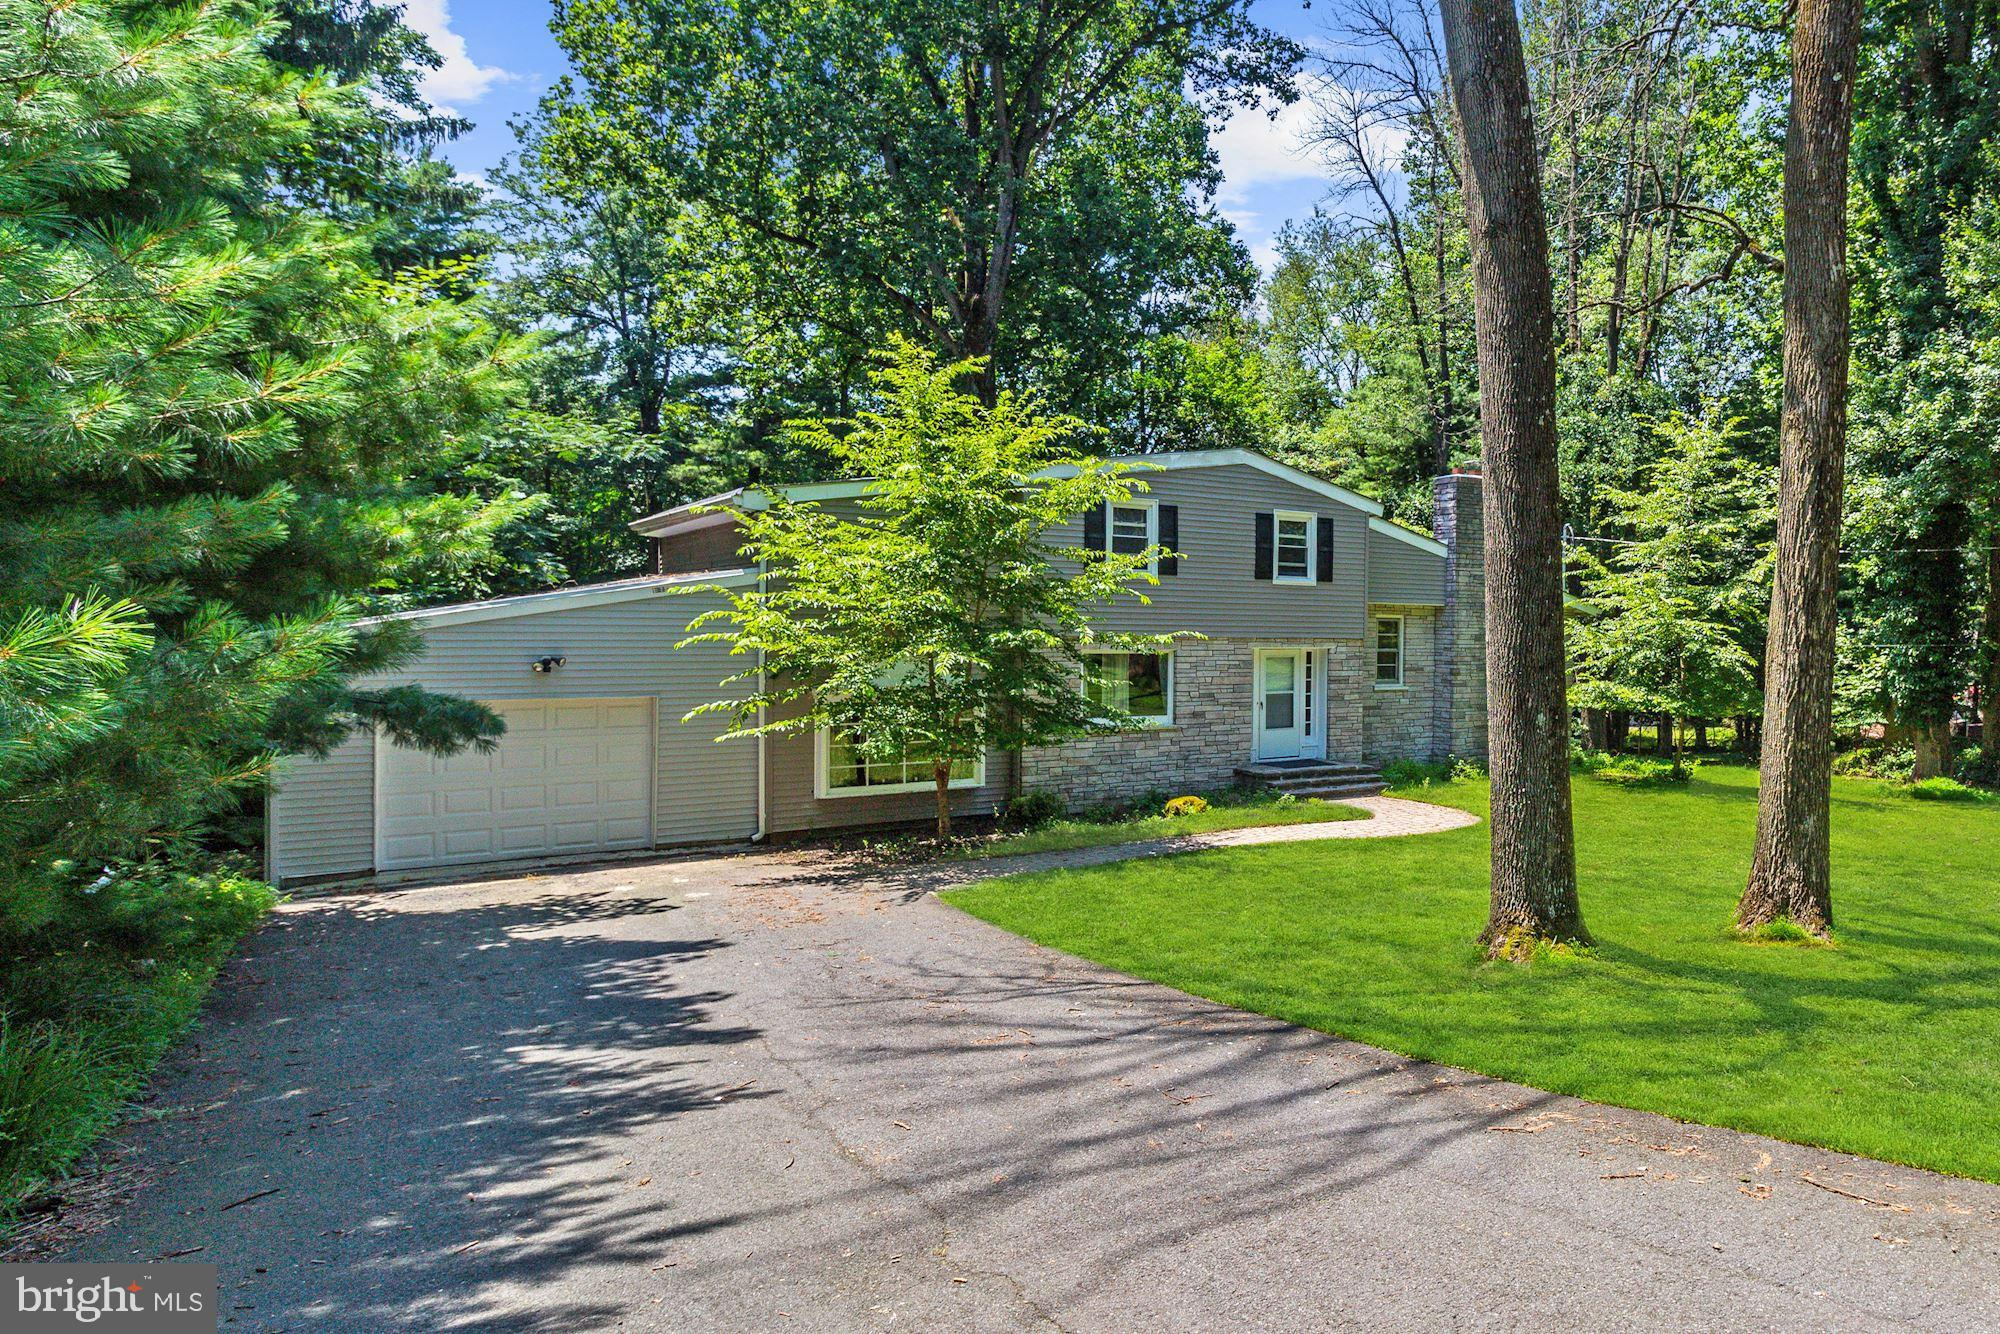 6 PERRY DRIVE, EWING, NJ 08628